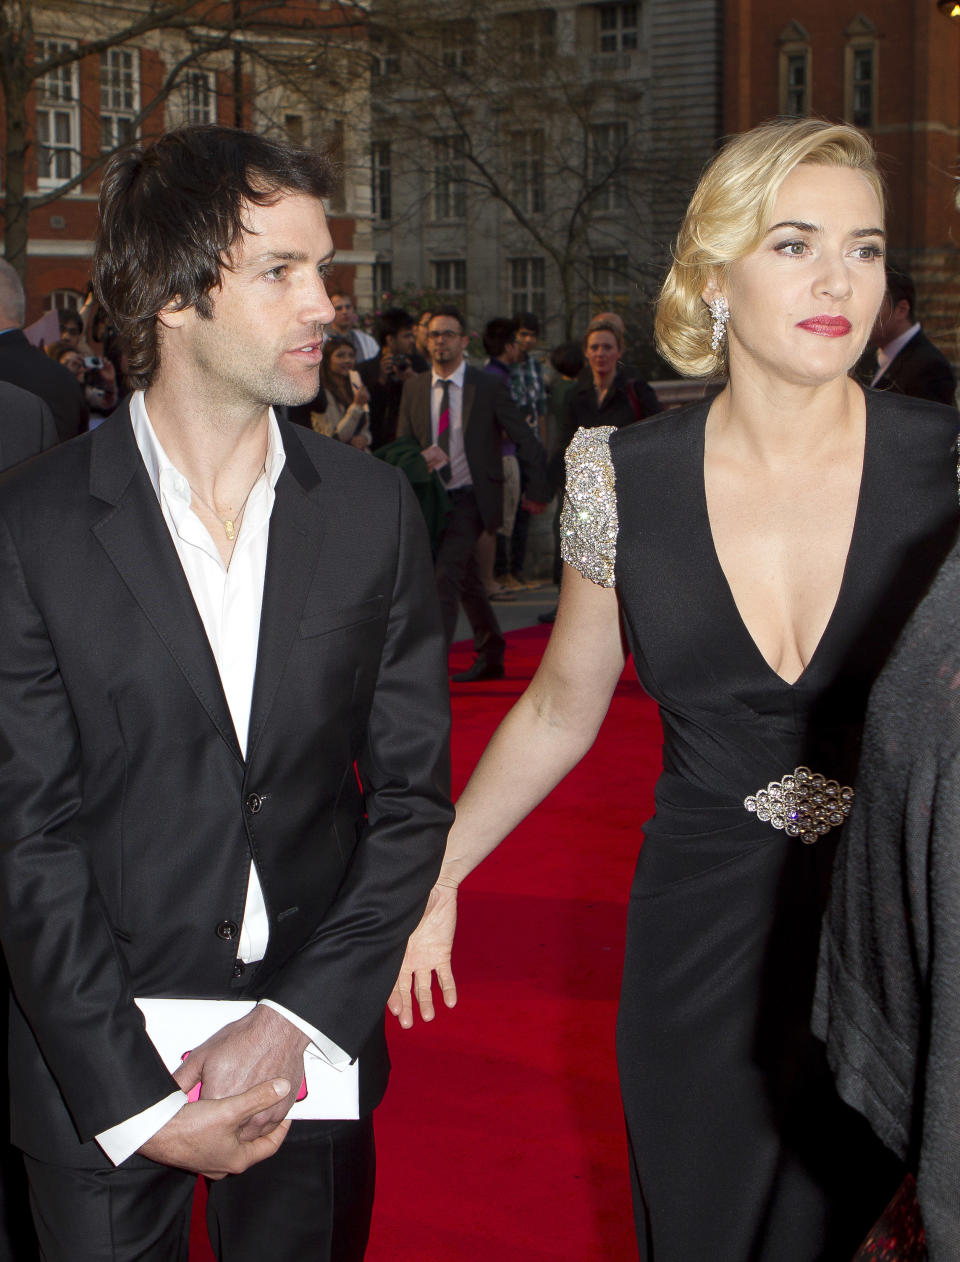 Actress Kate Winslet, right, arrives with  boyfriend Ned Rocknroll at the 'Titanic 3D' UK film premiere at the Royal Albert Hall in Kensington, West London, Tuesday, March 27, 2012. The re-launch of the Titanic 3D version comes 15 years after the film was a huge box office hit. (AP Photo/Joel Ryan)